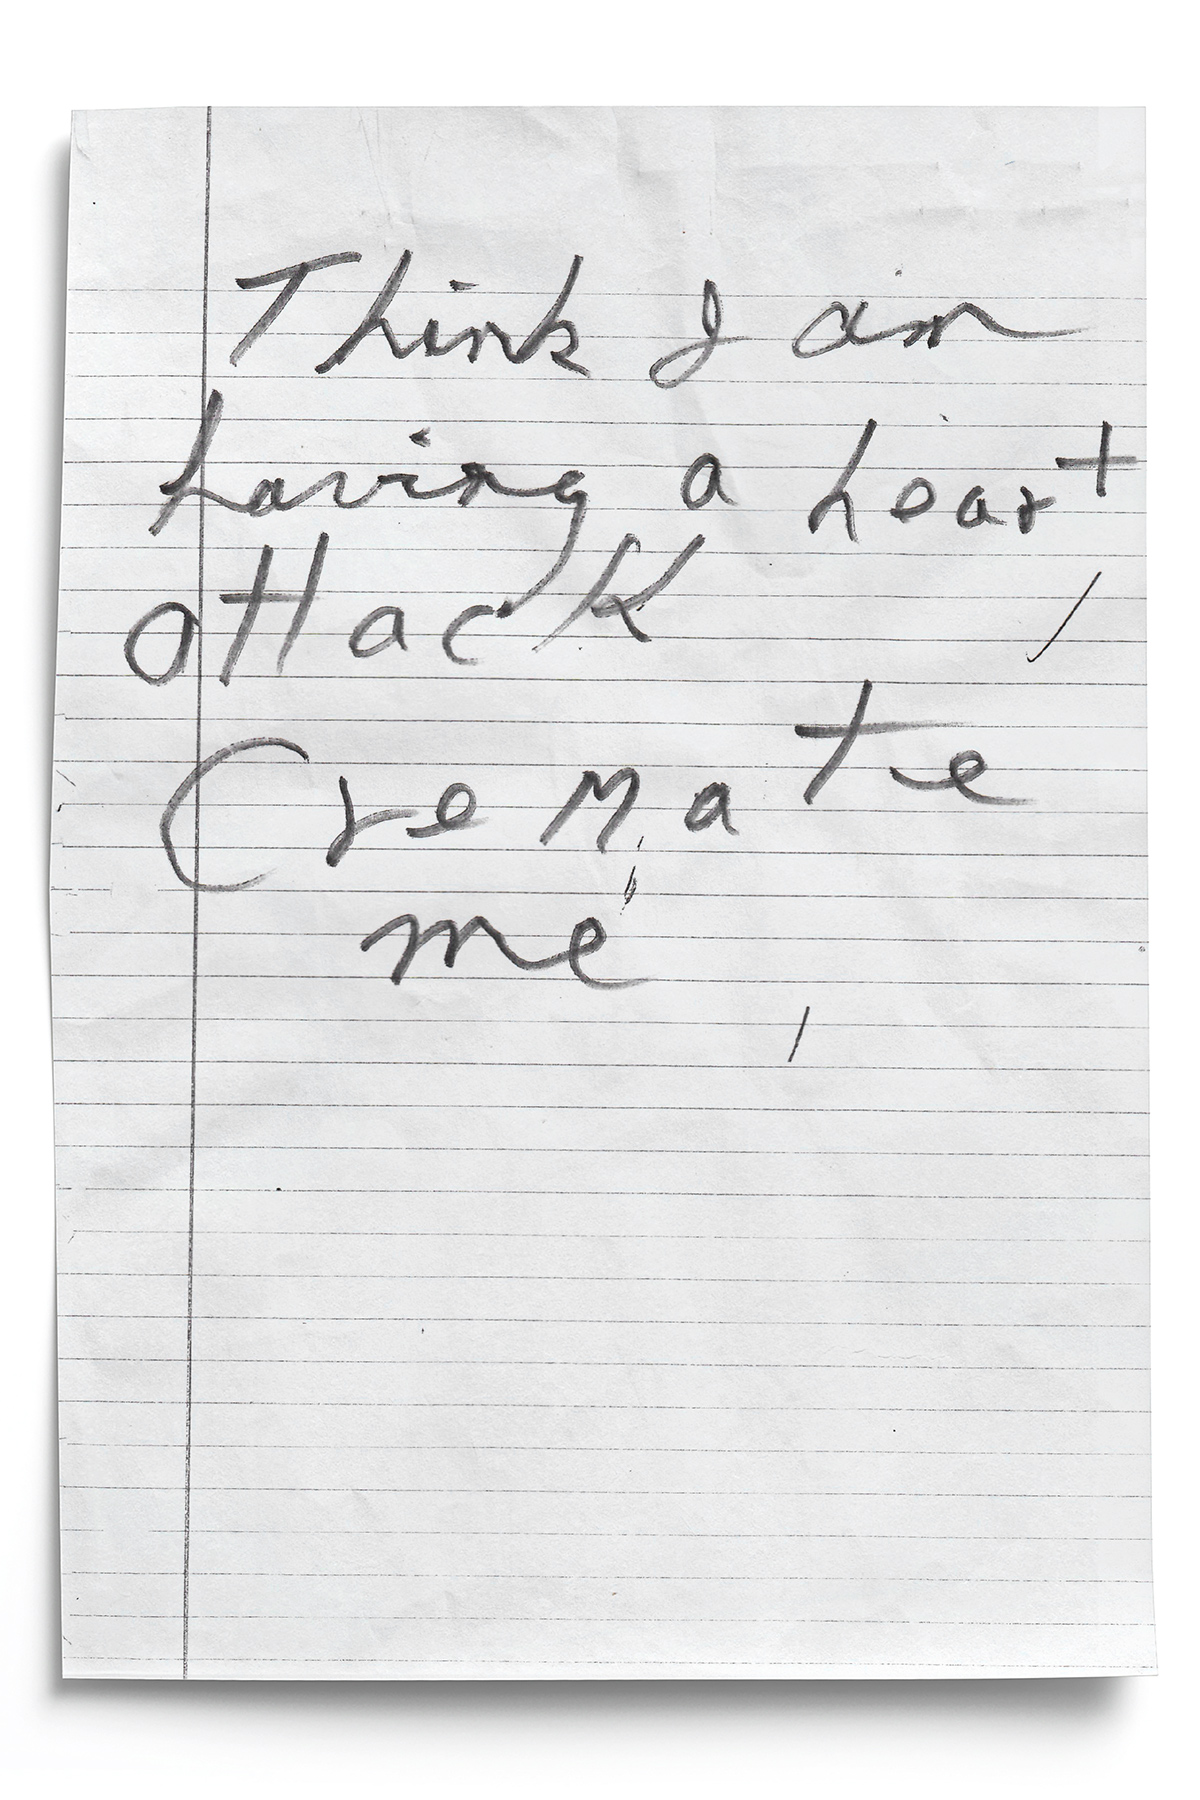 Letter Left by Harold at the Crime Scene